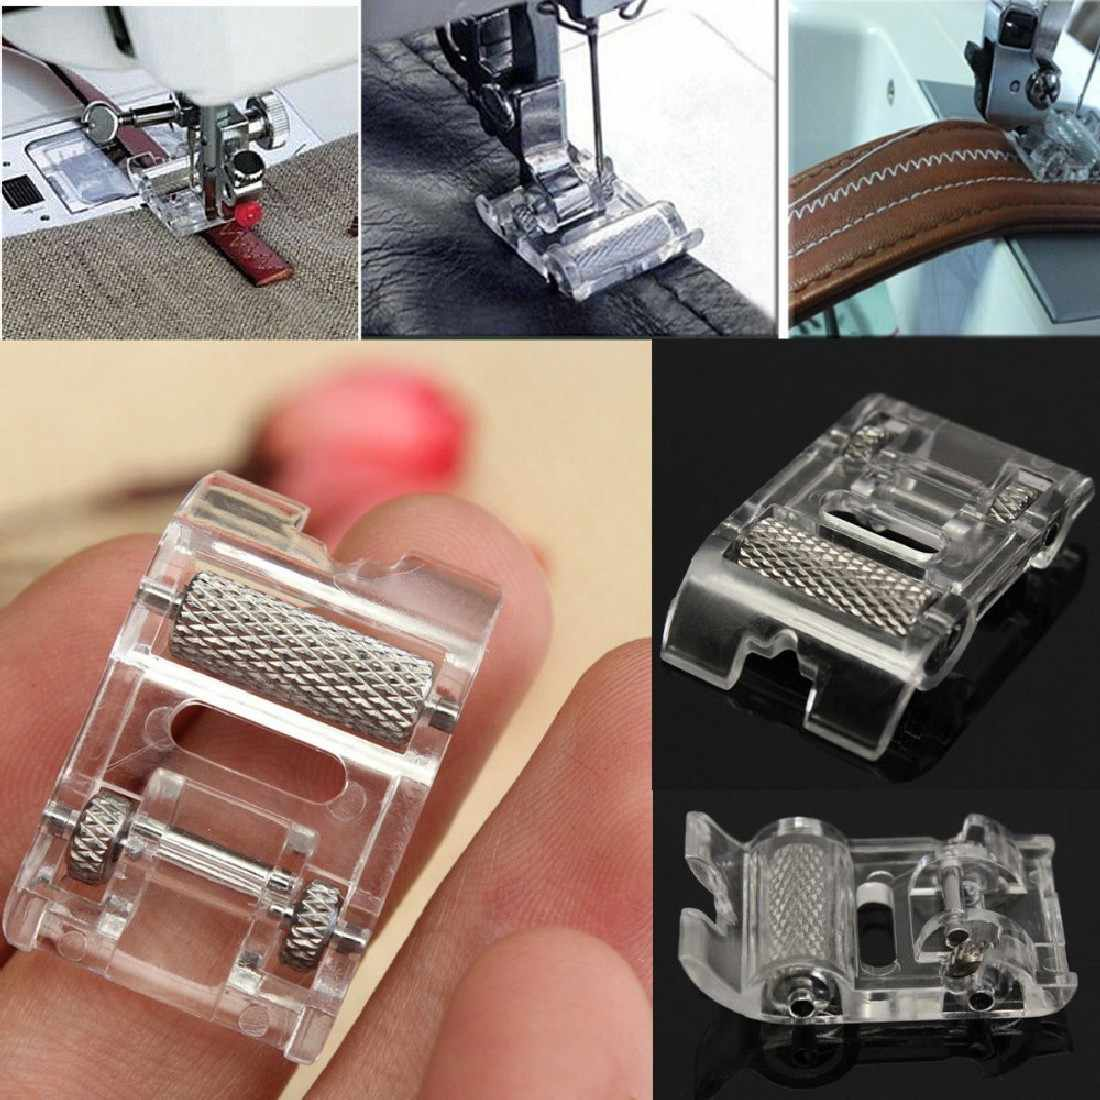 New Household New Mini Low Shank Roller Sewing Machine Presser Foot Leather Household Sewing Machine Accessories